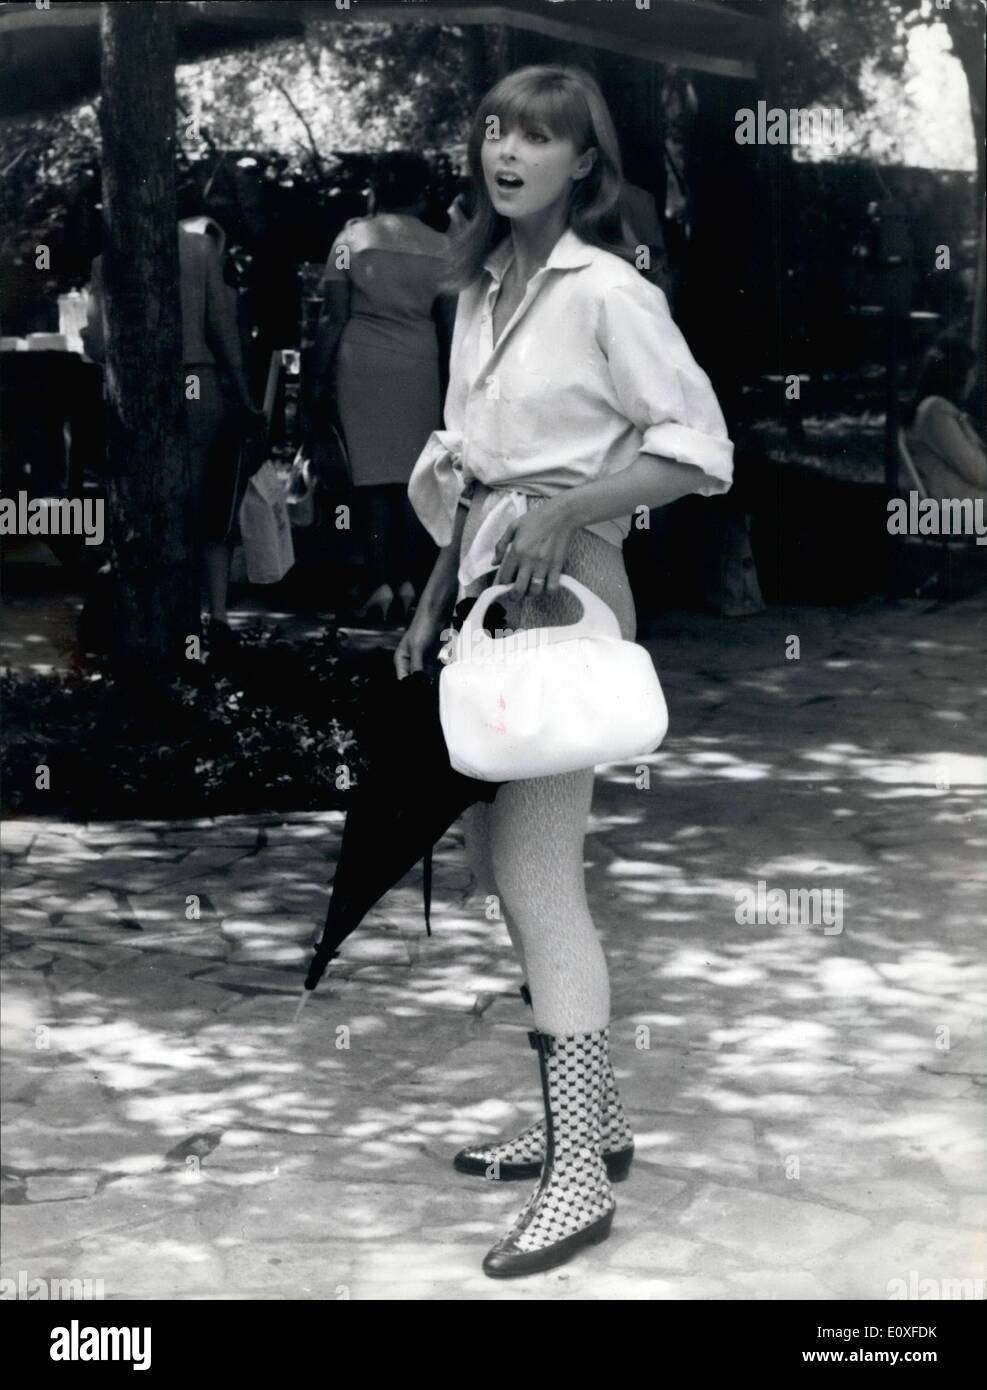 08 1966 red hair american star tina louise is filming in rome